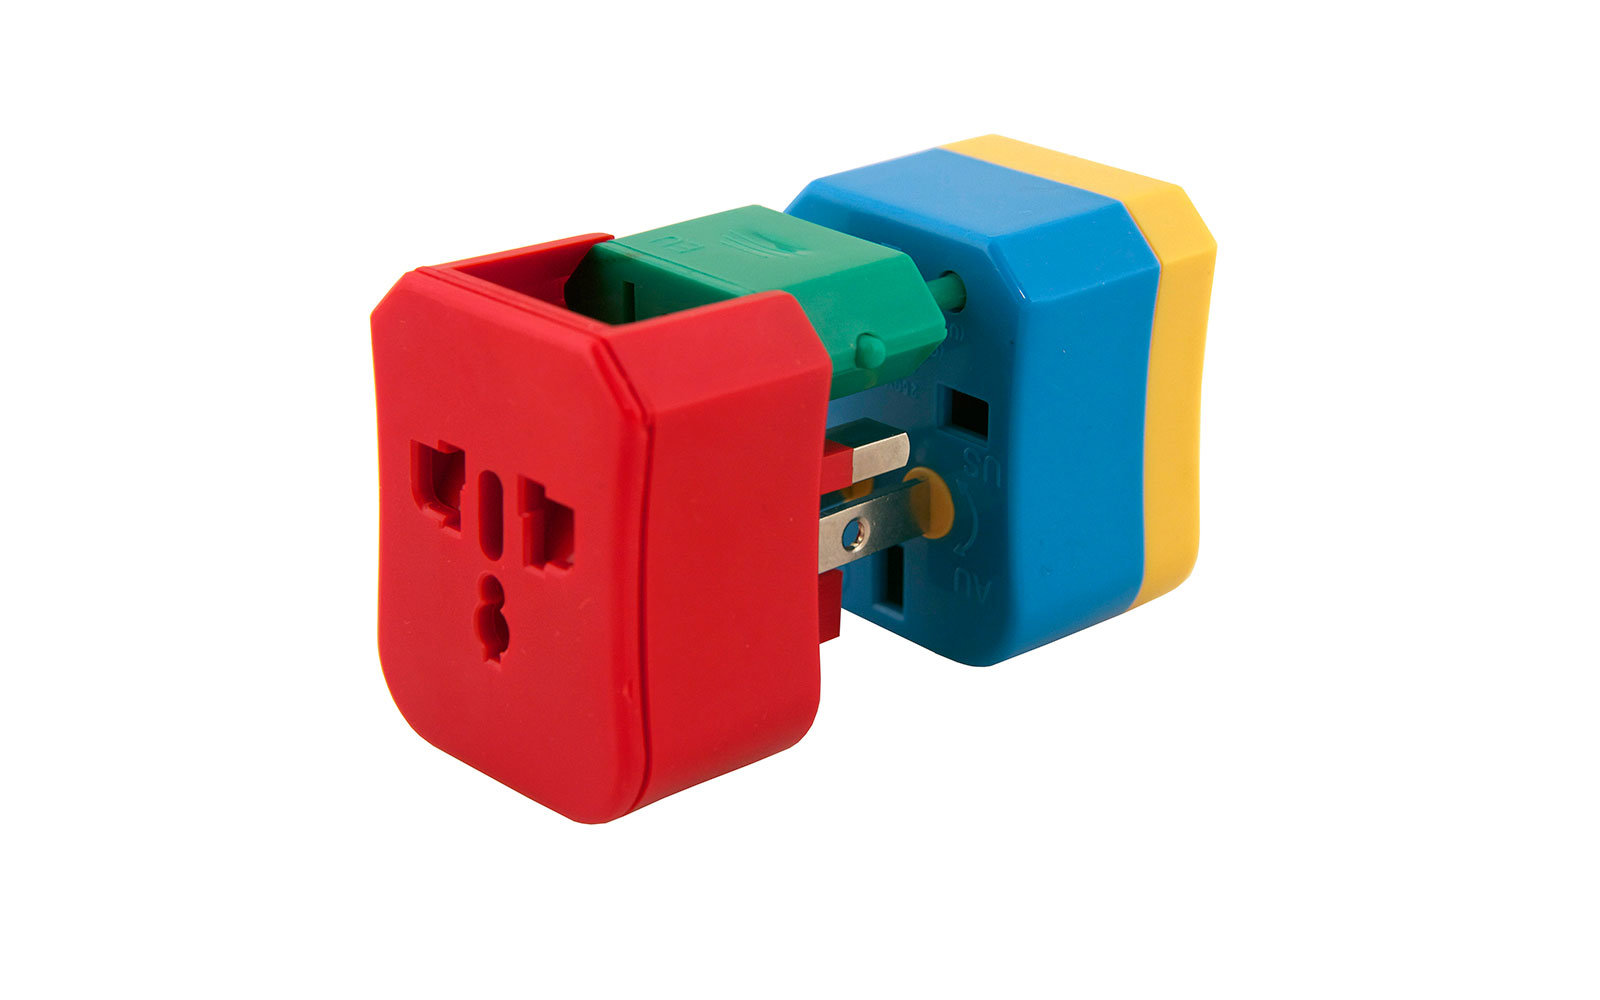 Travel Wedding Gifts: 4-in-1 Adapter